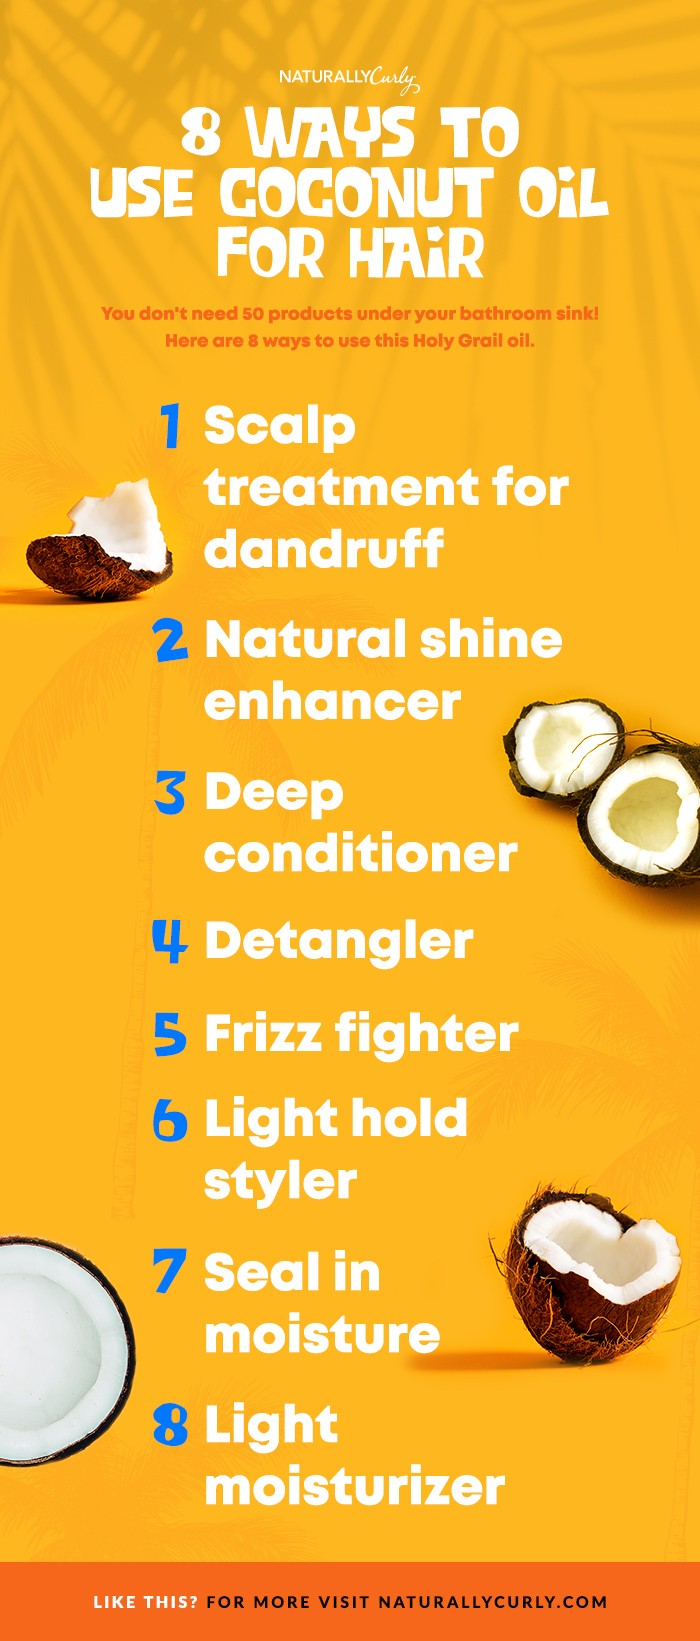 INFOGRAPHIC8-ways-to-use-coconut-oil